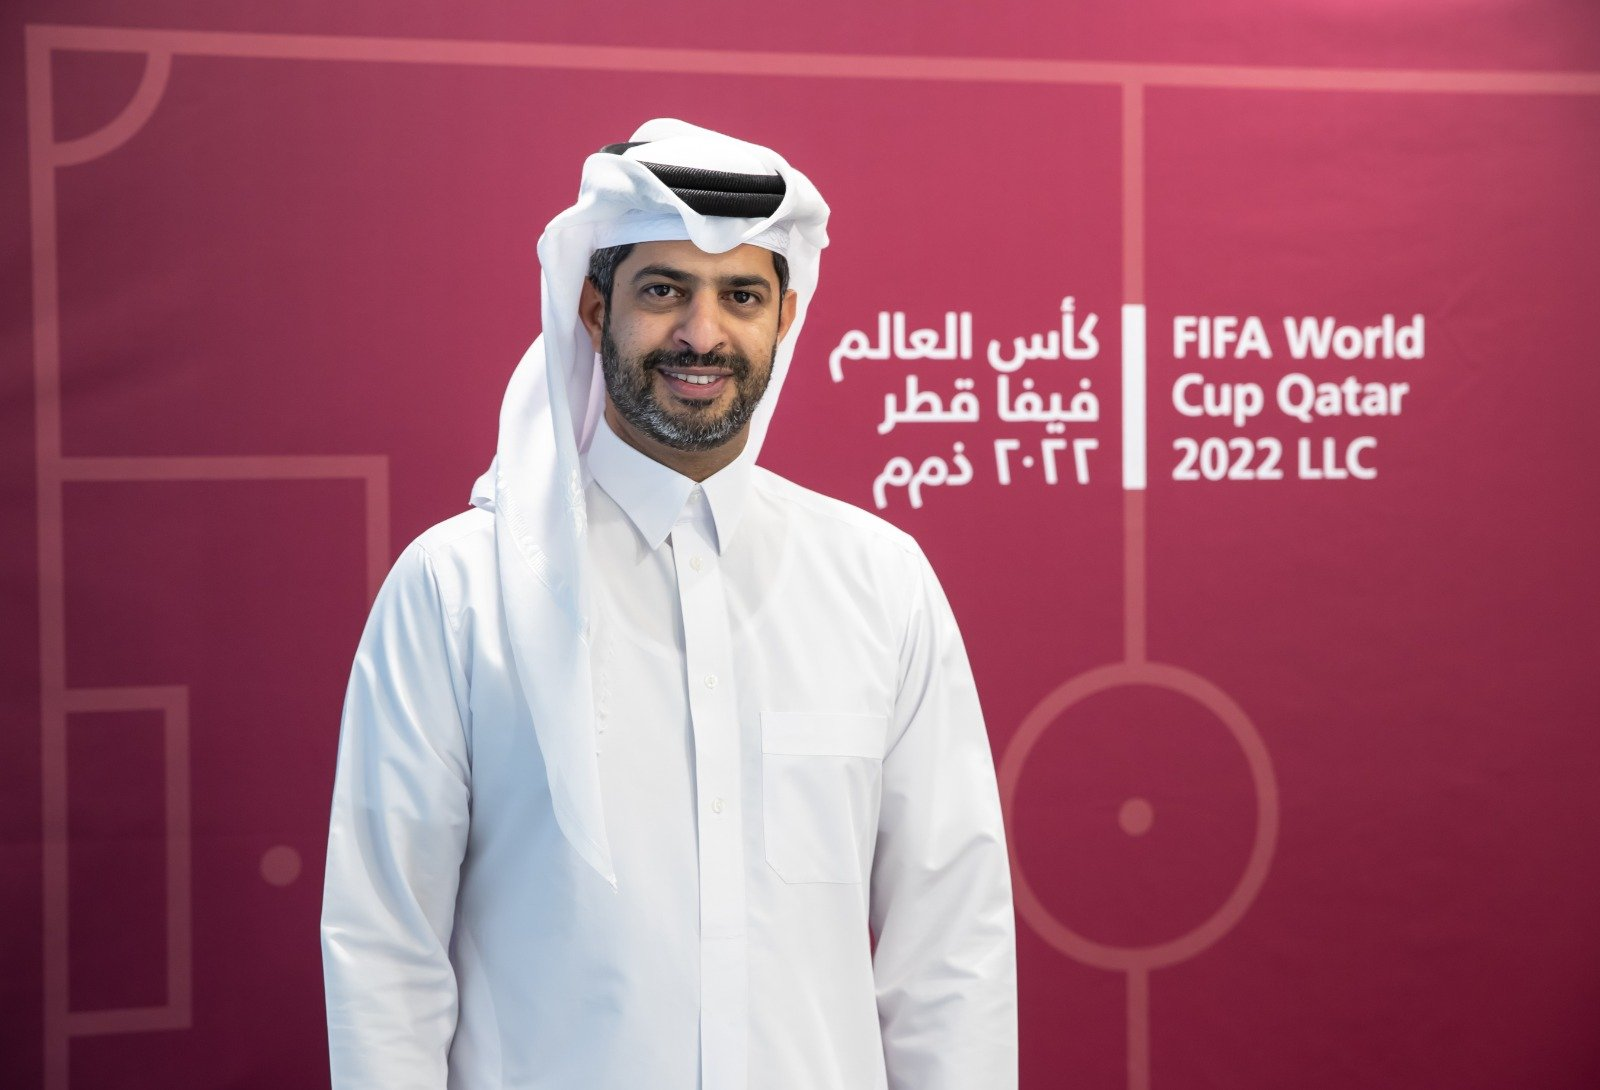 Nasser al-Khater, the CEO of the FIFA World Cup Qatar 2022 LLC.